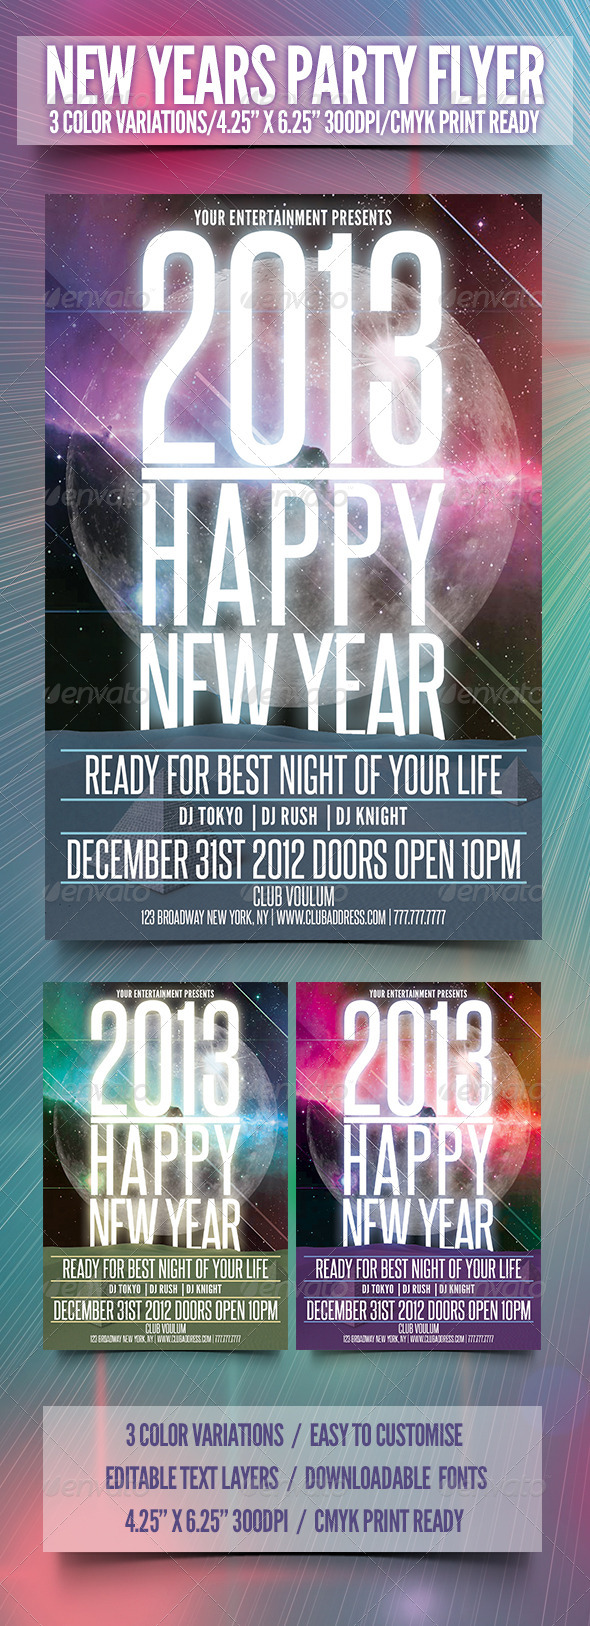 GraphicRiver 2013 Happy New Year 3540863